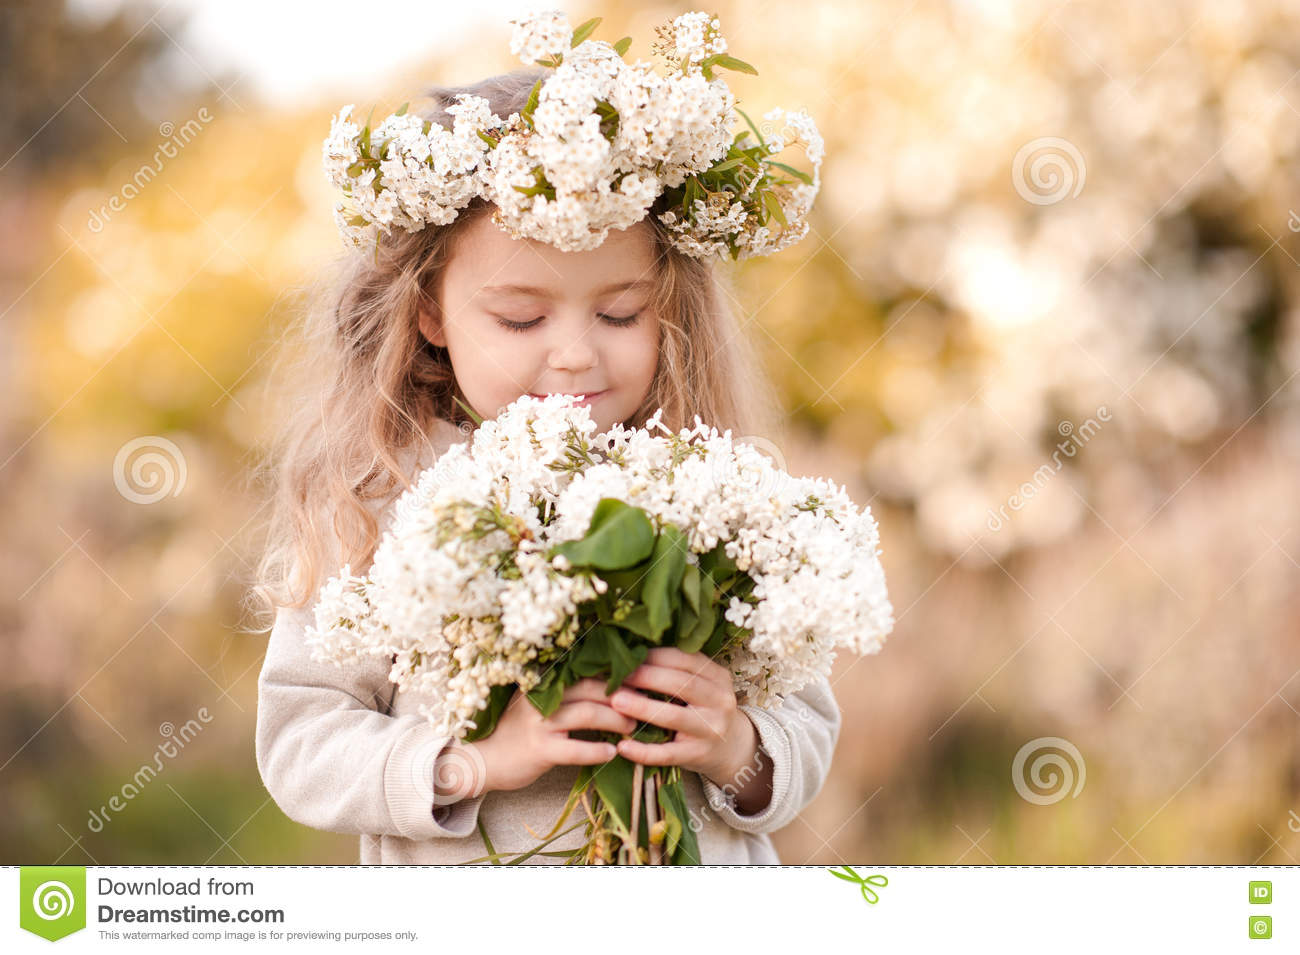 beautiful baby girl with flowers outdoors stock photo - image of